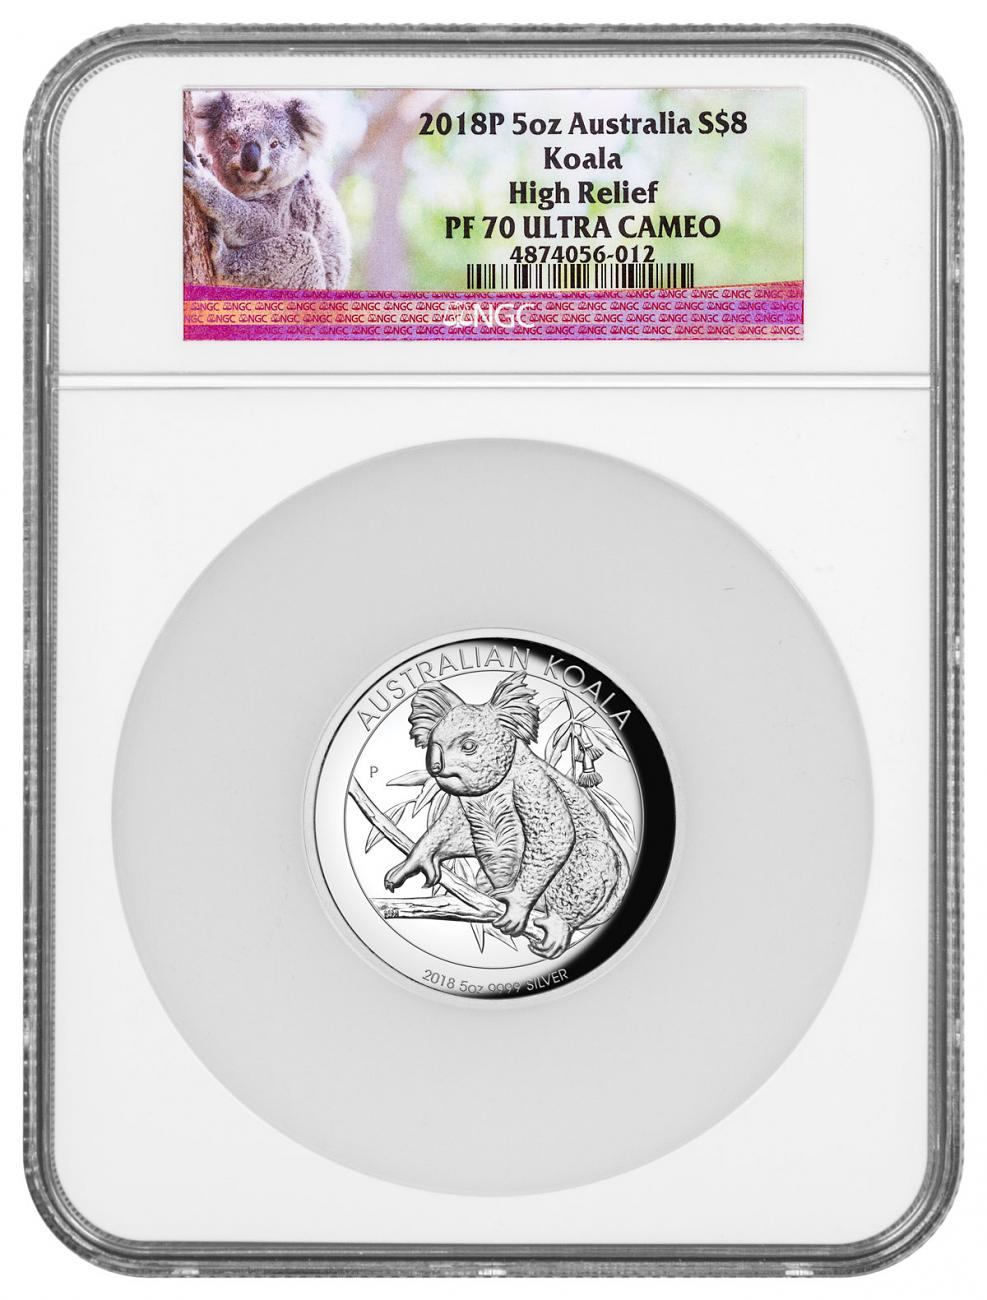 2018-P Australia 5 oz High Relief Silver Koala Proof $8 Coin NGC PF70 UC Mint Display Box Koala Label